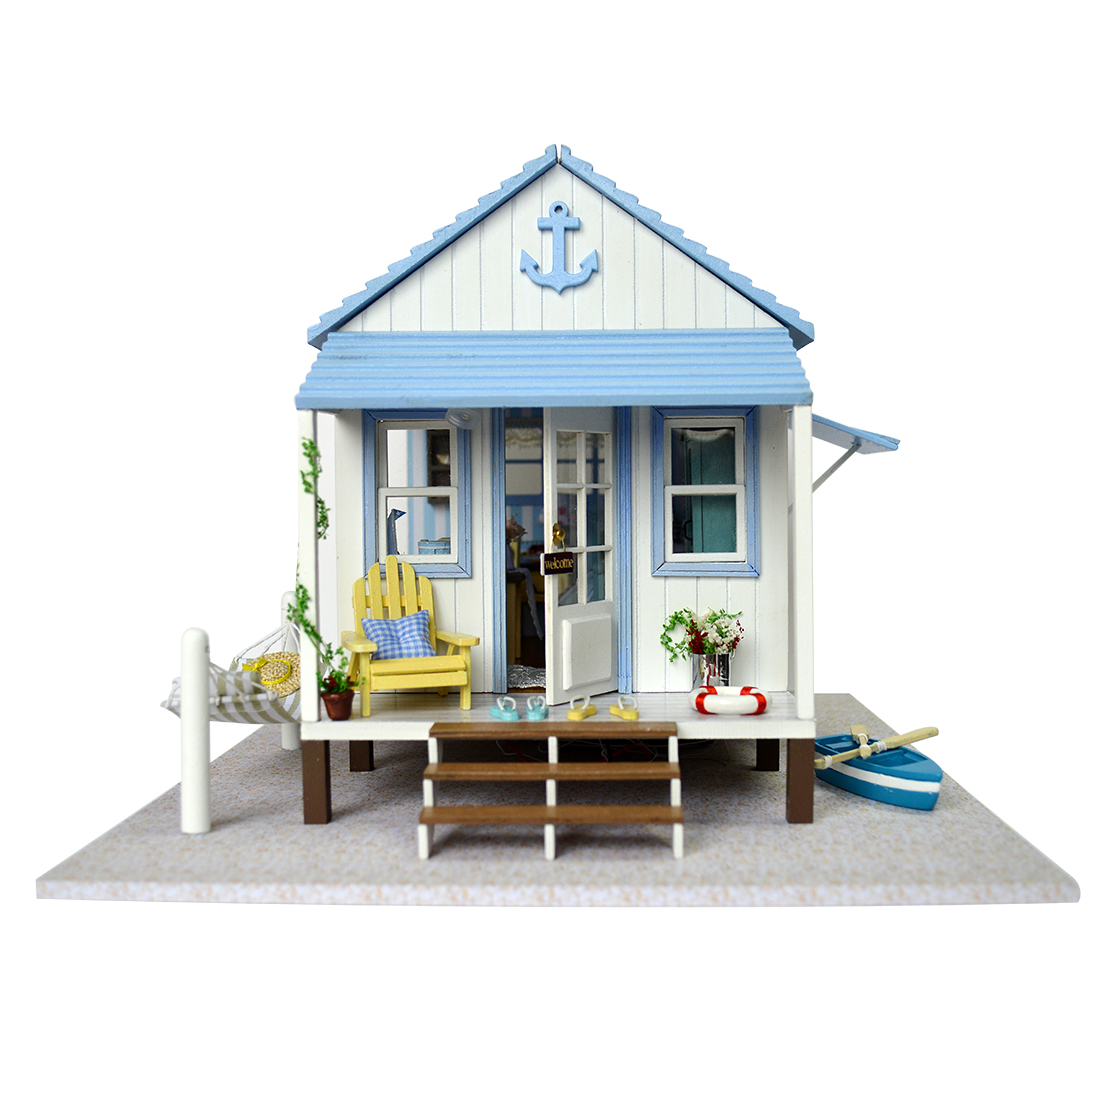 DIY Happy Coast Sea Doll House Miniature Wooden Dollhouse With Furnitures Blue House Toys For Children Birthday Gift